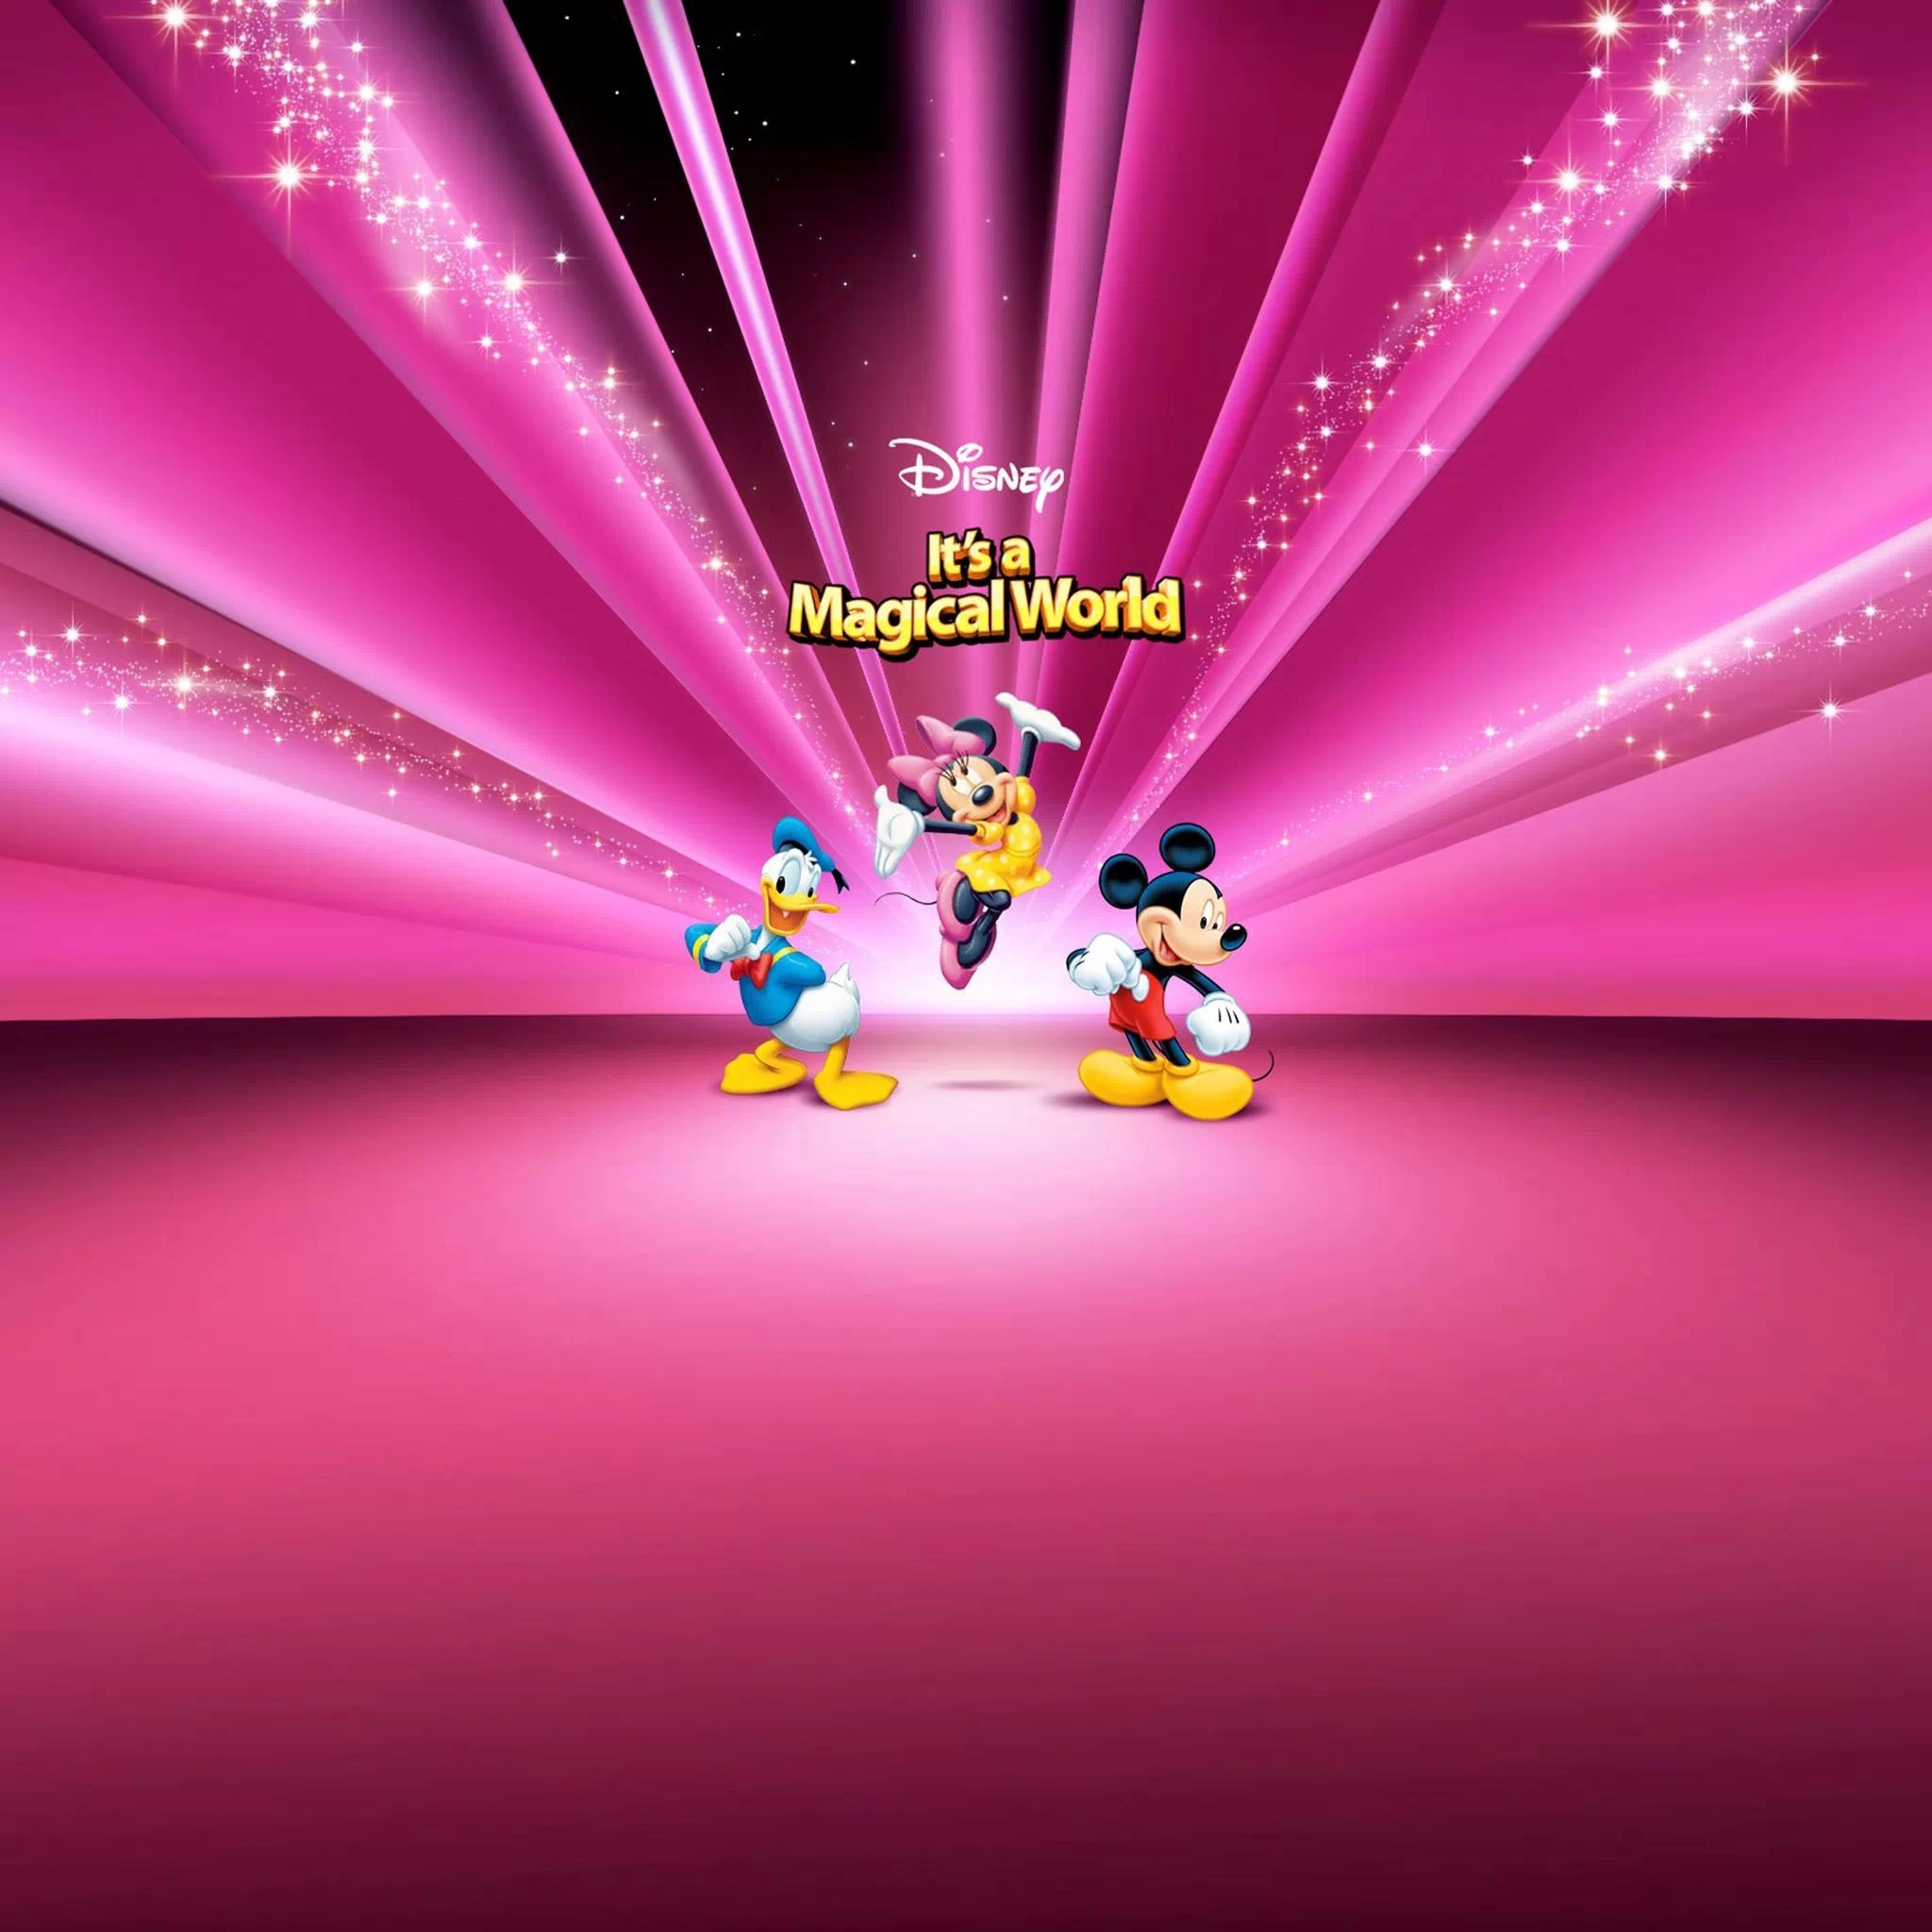 Disney Christmas Wallpaper For IPad